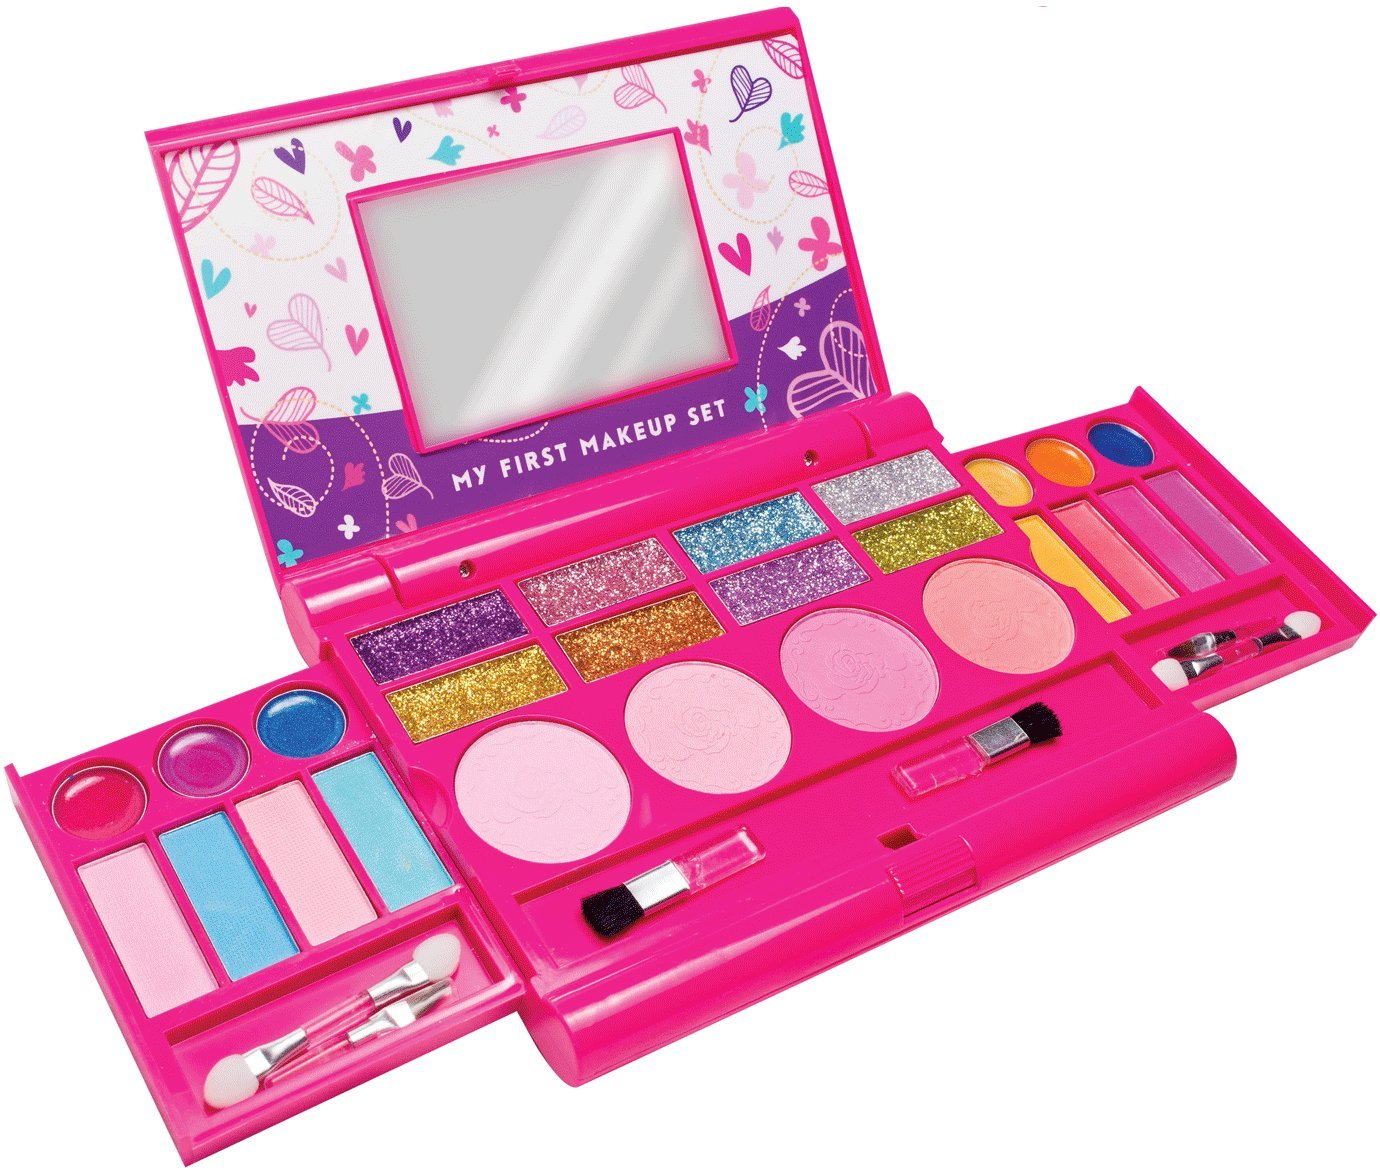 My First Makeup Set, Girls Makeup Kit, Fold Out Makeup Palette with Mirror and Secure Close - Safety Tested- Non Toxic (Original Design) by Make it Up